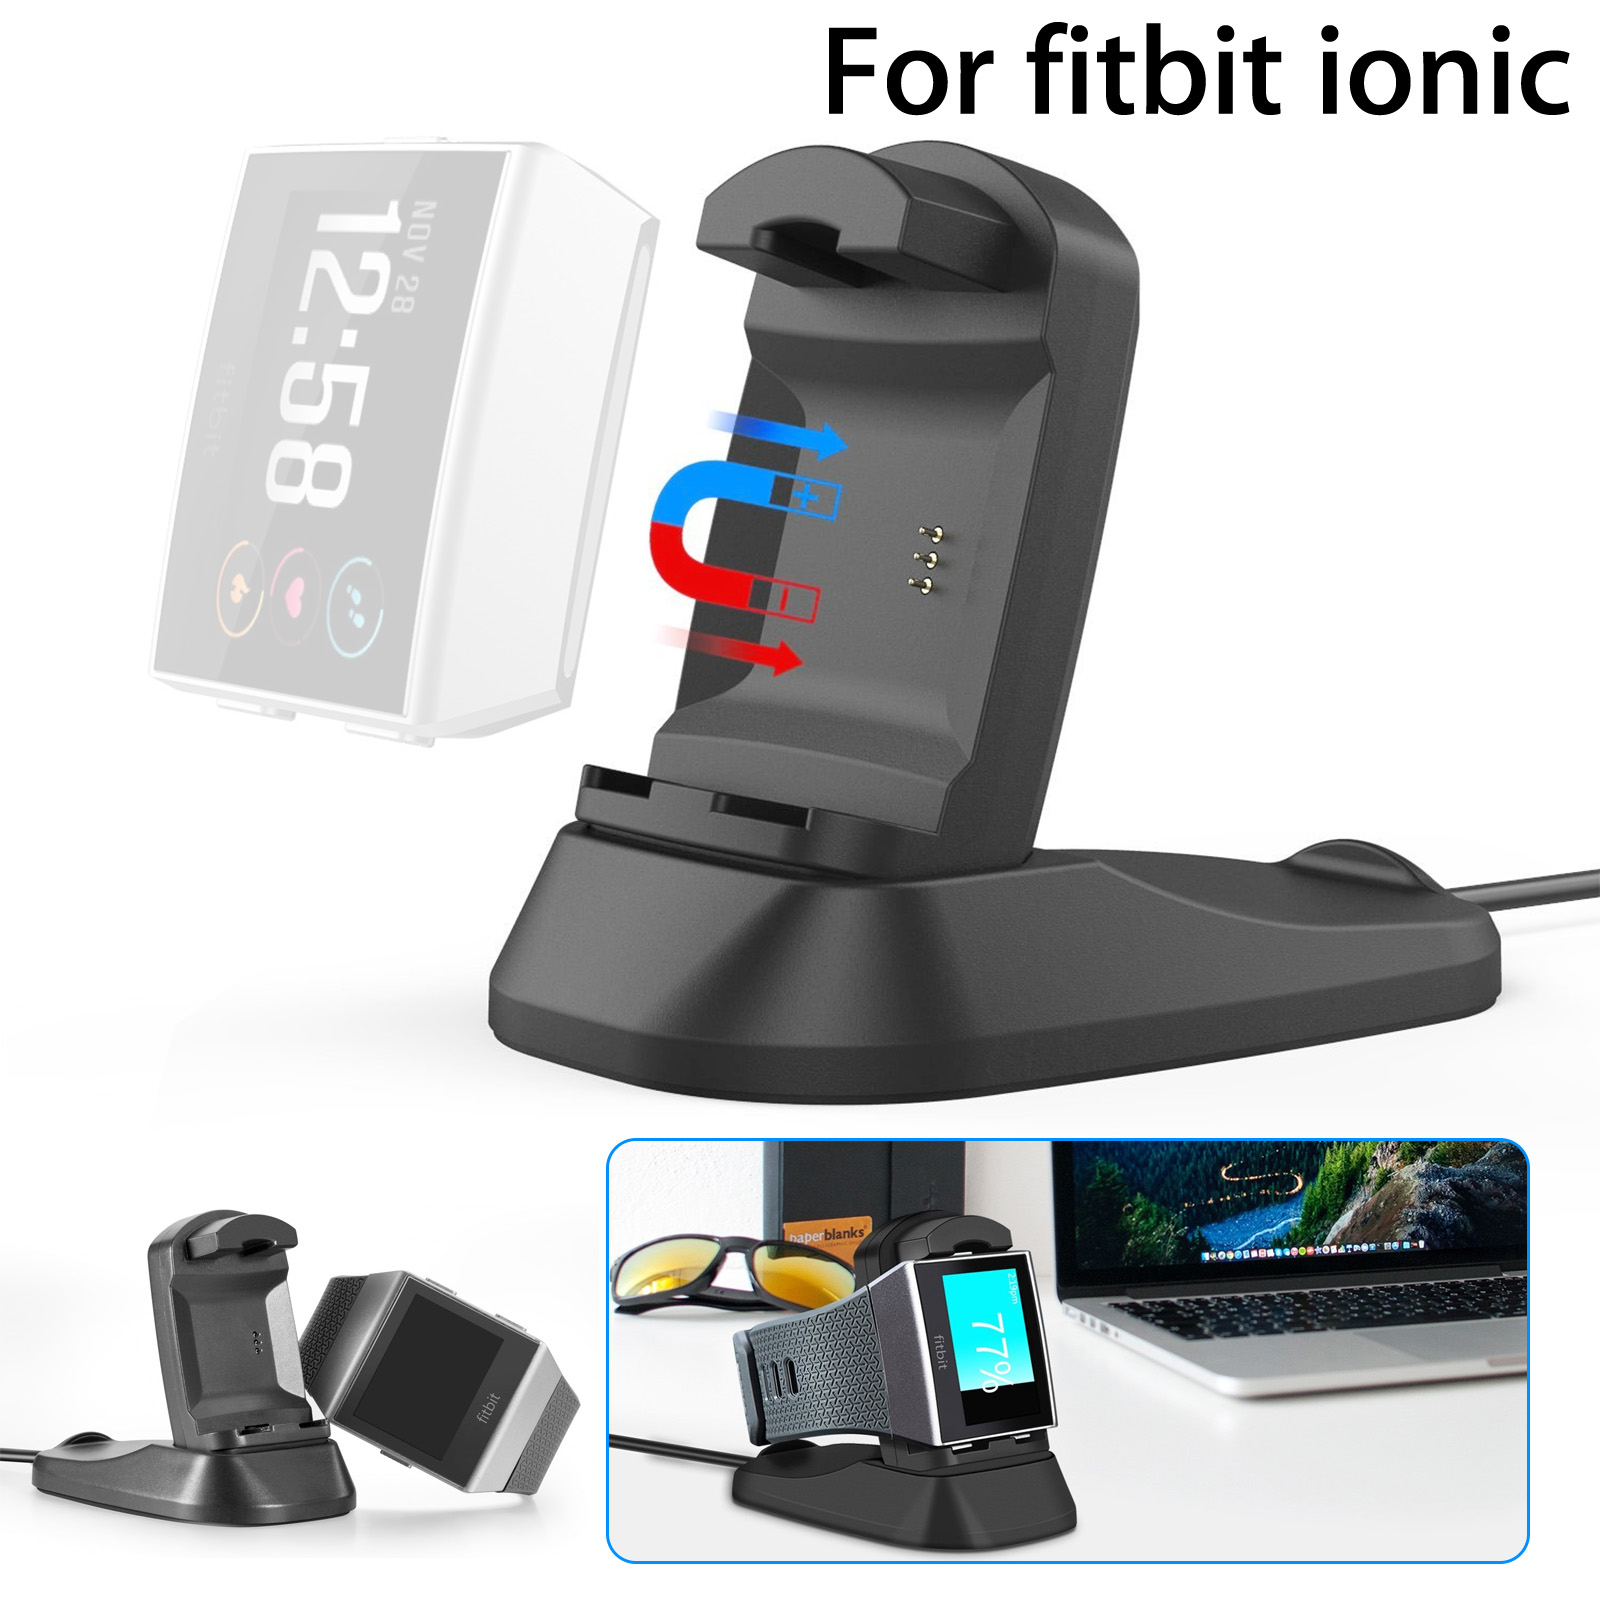 Charger Dock for Fitbit Ionic, USB Charging Stand Accessories Charging Dock Station Cradle Holder with Cable for Fitbit Ionic Smart Watch